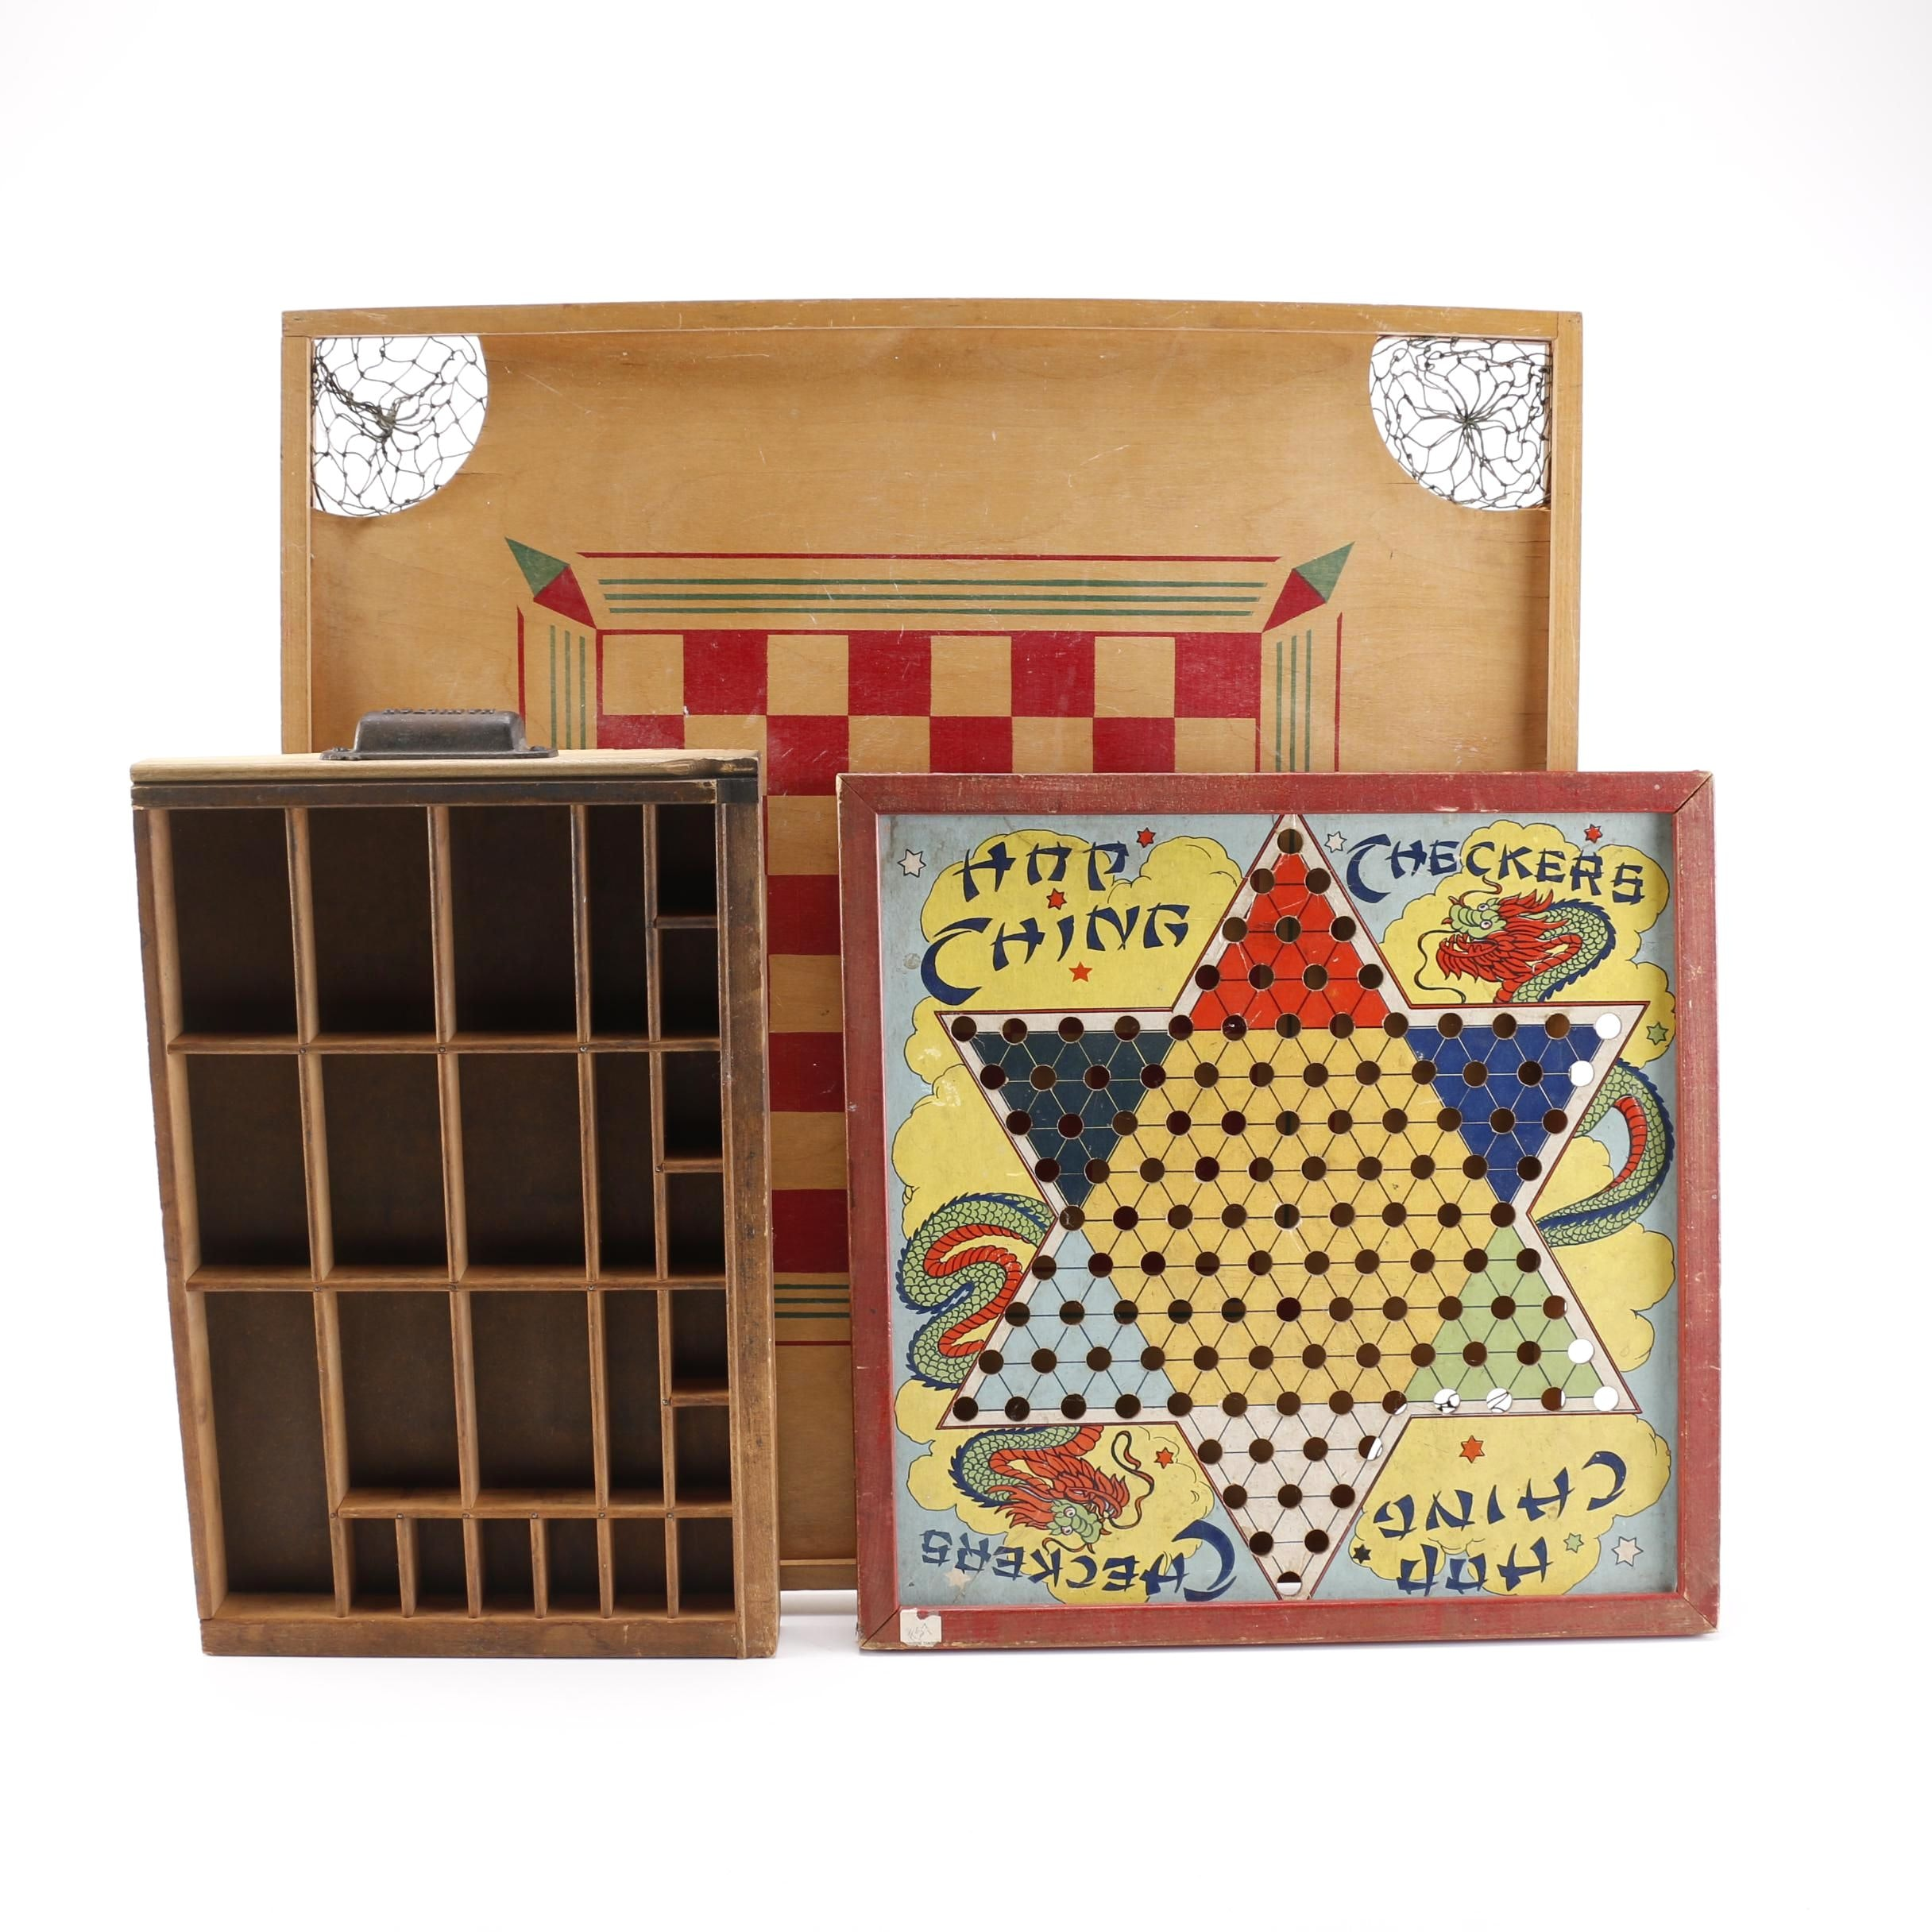 Collection of Game Boards and a Printer's Typeset Tray